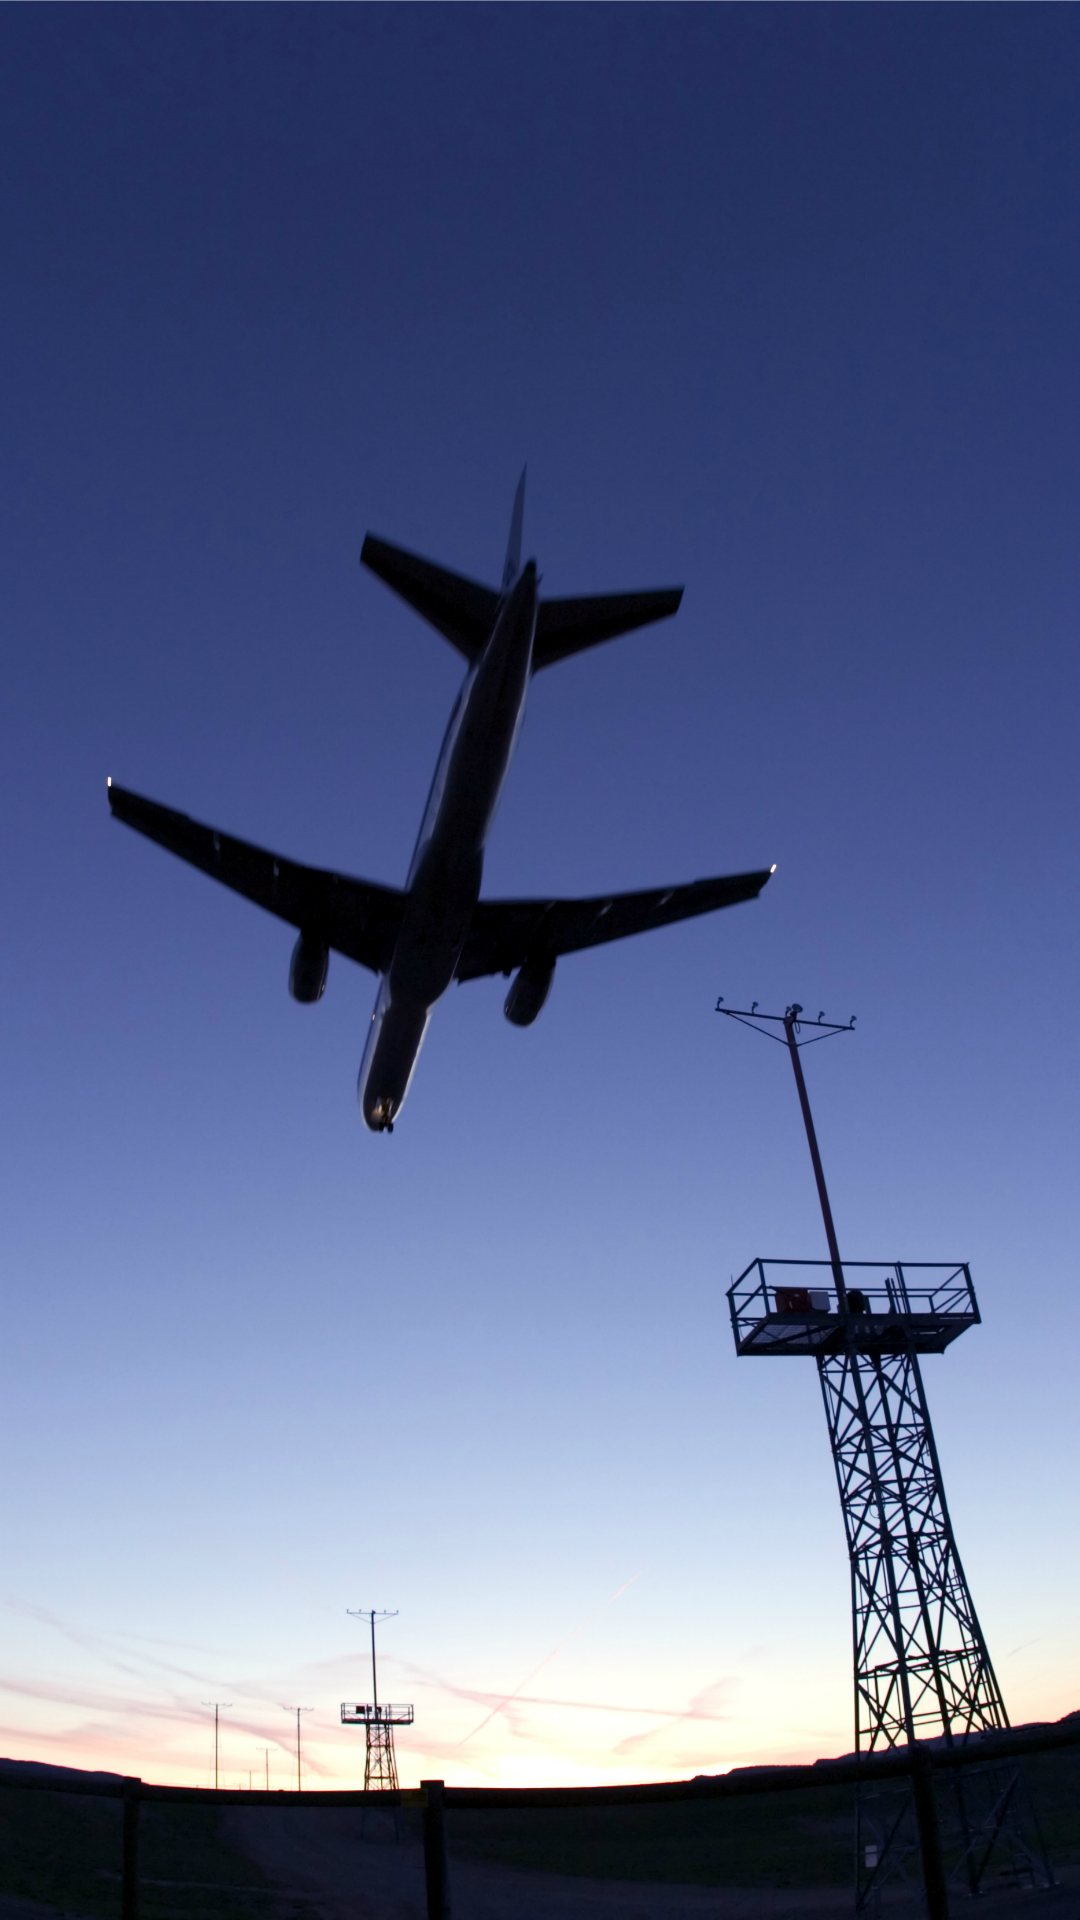 Rationales to overcome a fear of flying